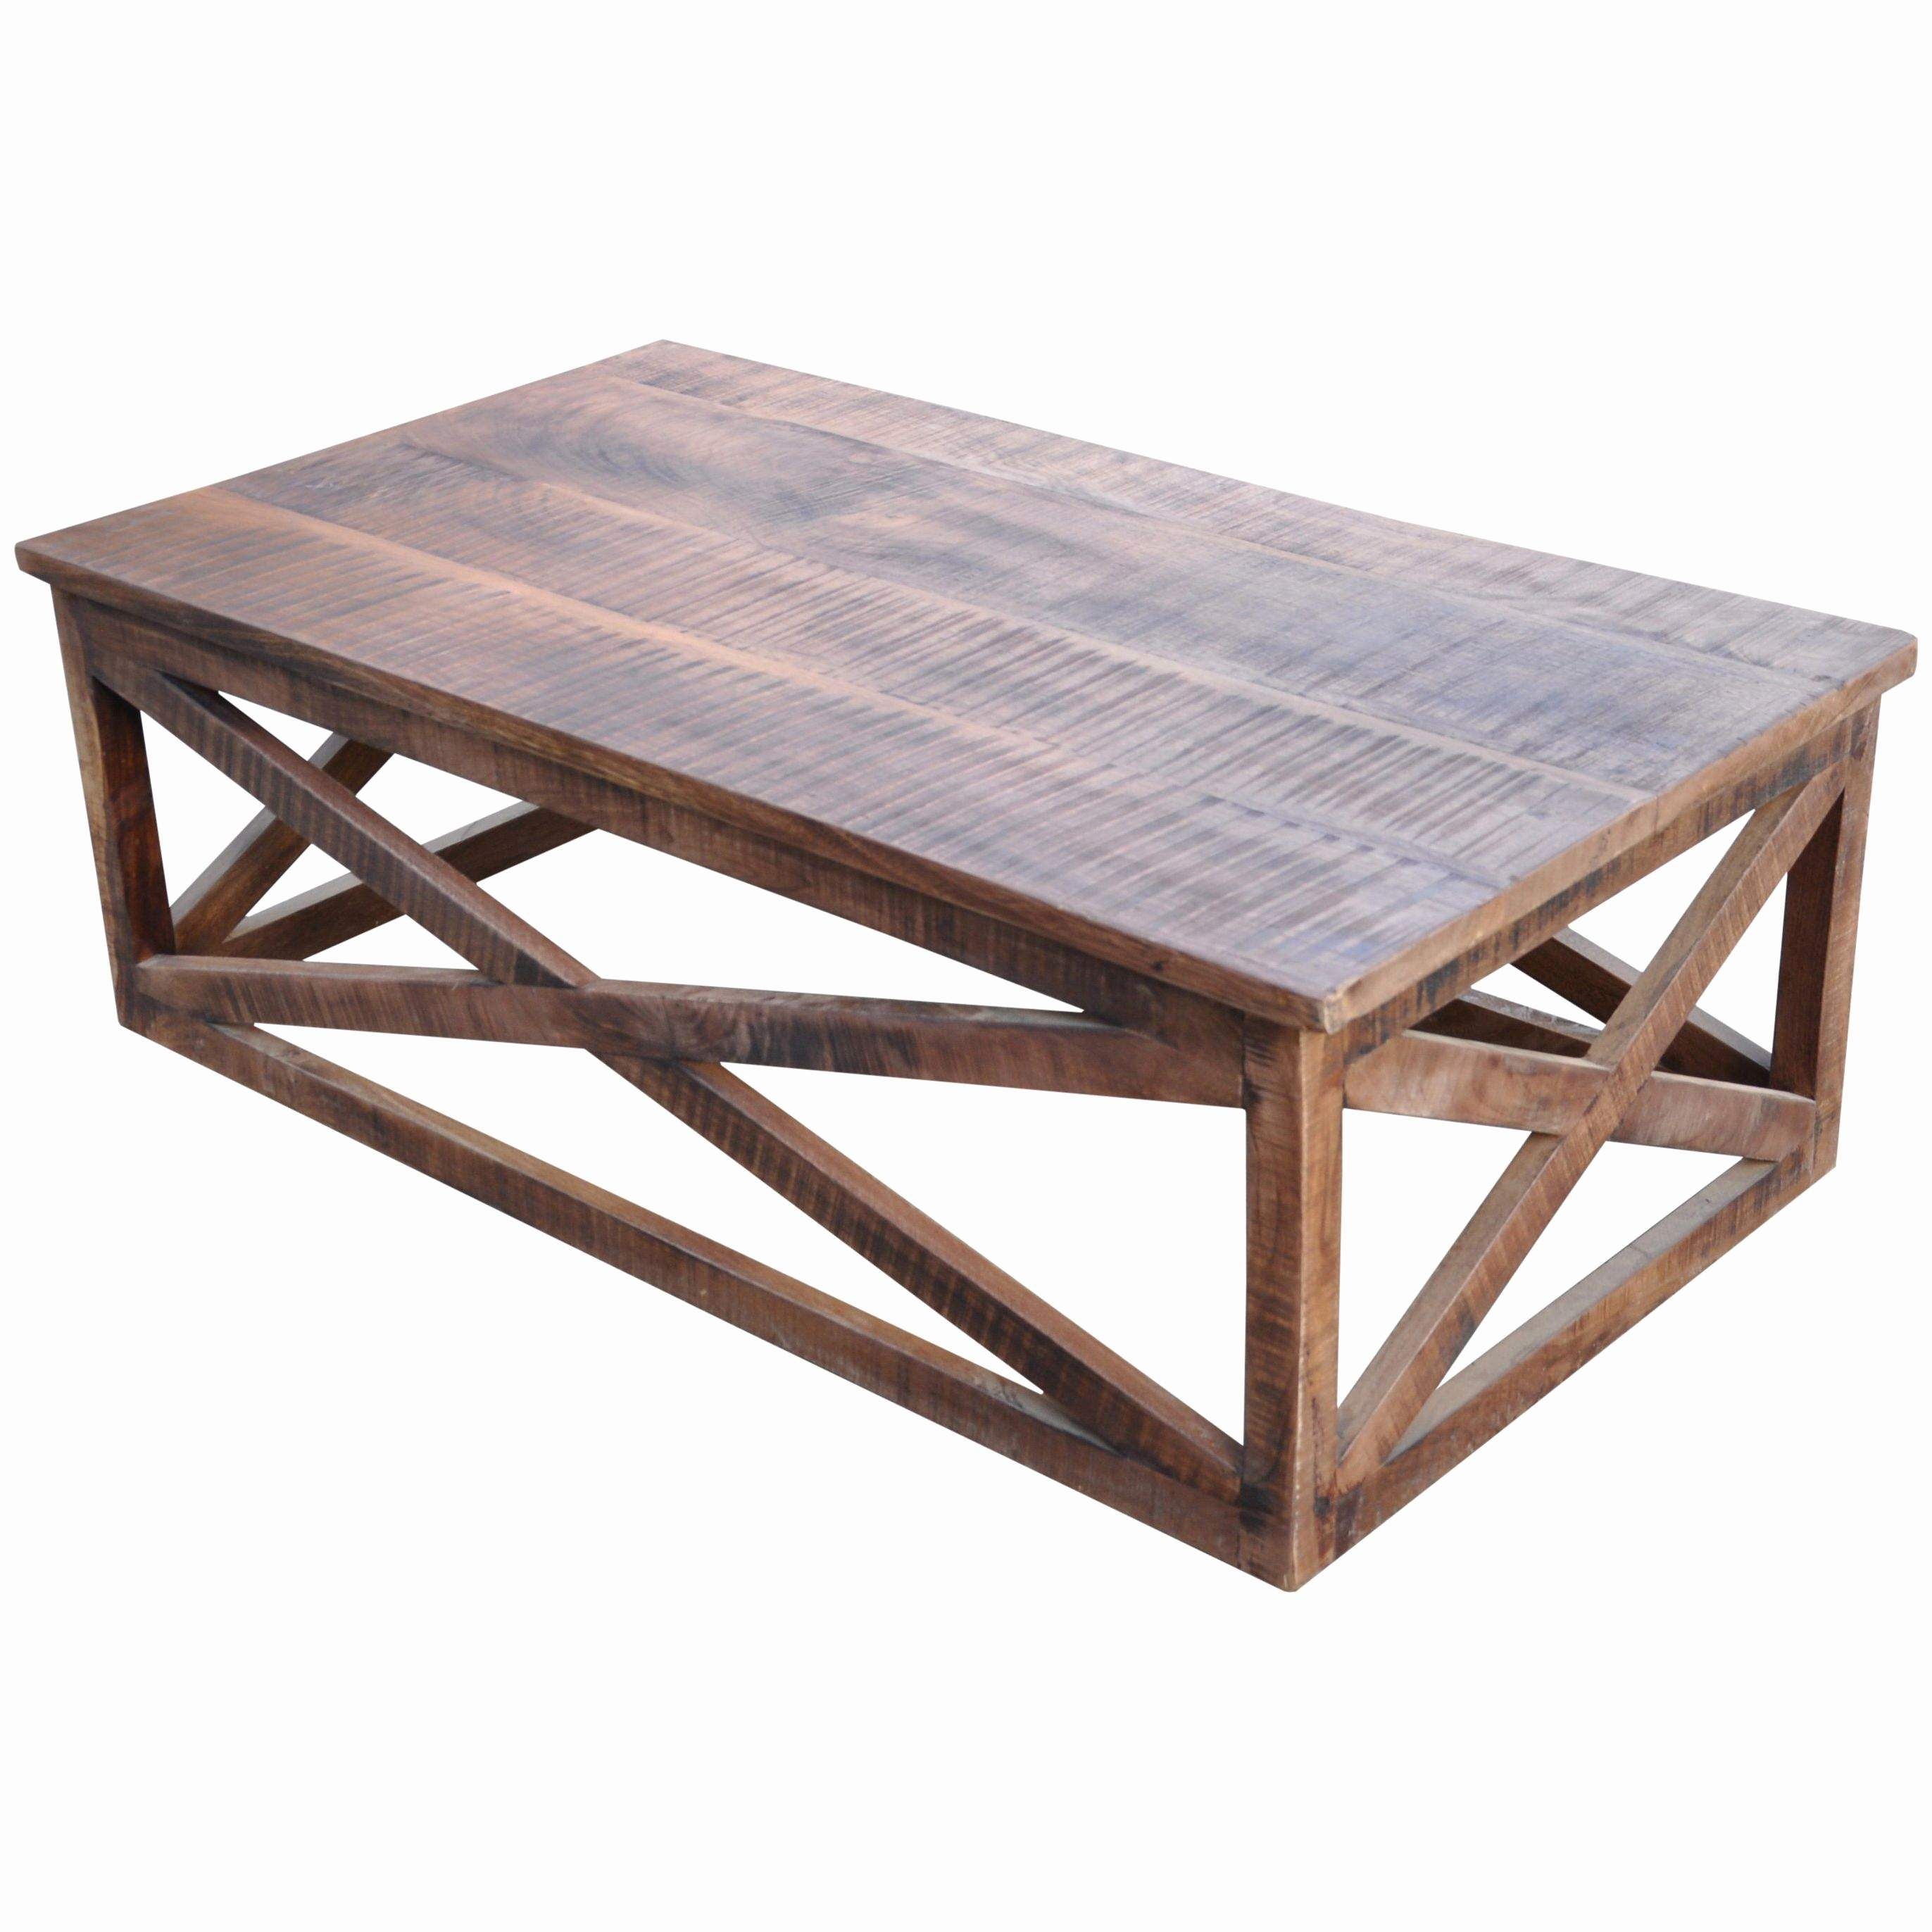 Uncommon Coffee Tables That Will Change Your Living Room In A Split Second From Round Table Coffee Table India Rectangle Coffee Table Wood Coffee Table Square [ 2744 x 2744 Pixel ]